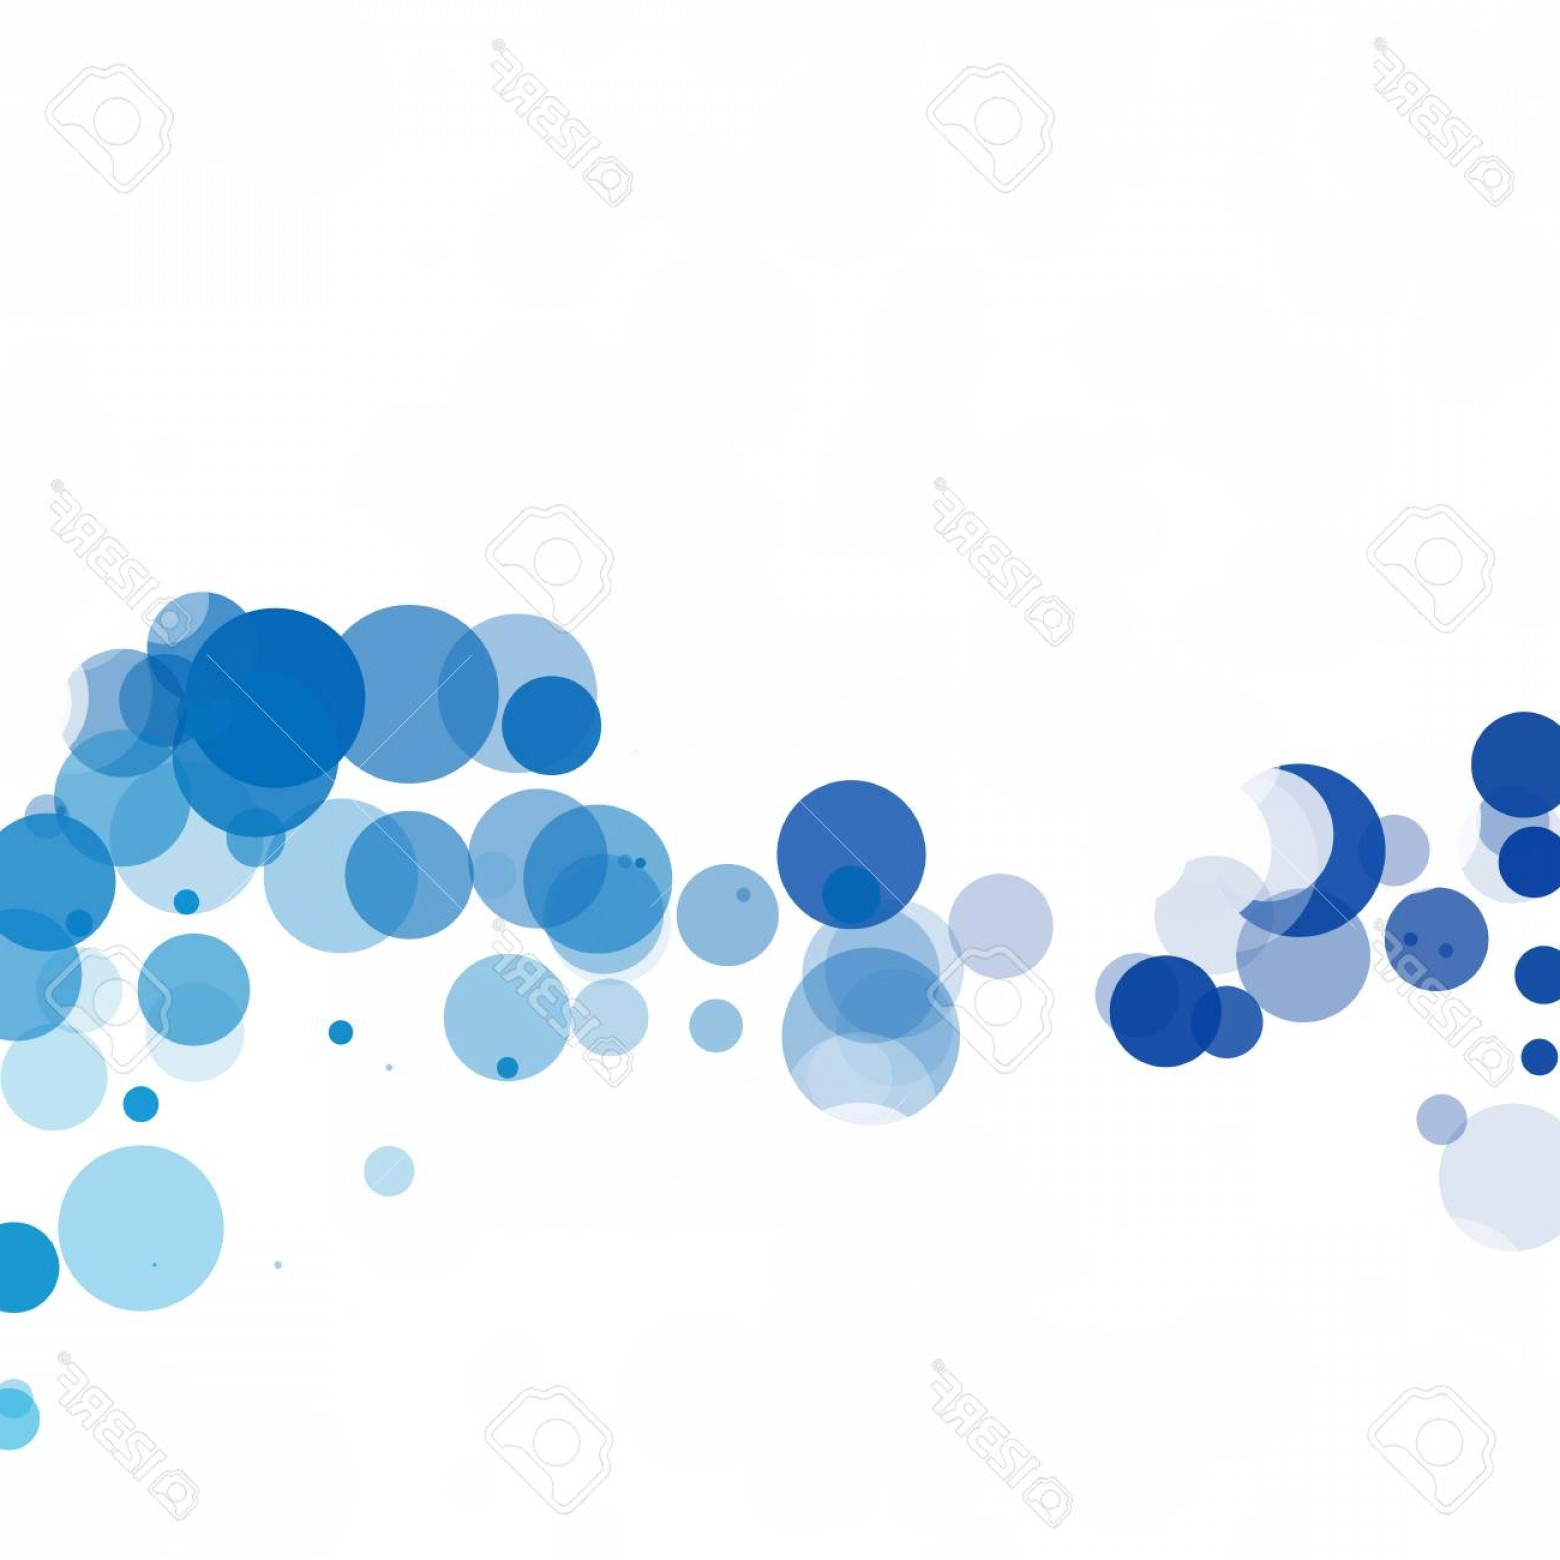 Vector Bubbles Circle: Photostock Vector Bubbles Circle Dots Unique Blue Bright Vector Background